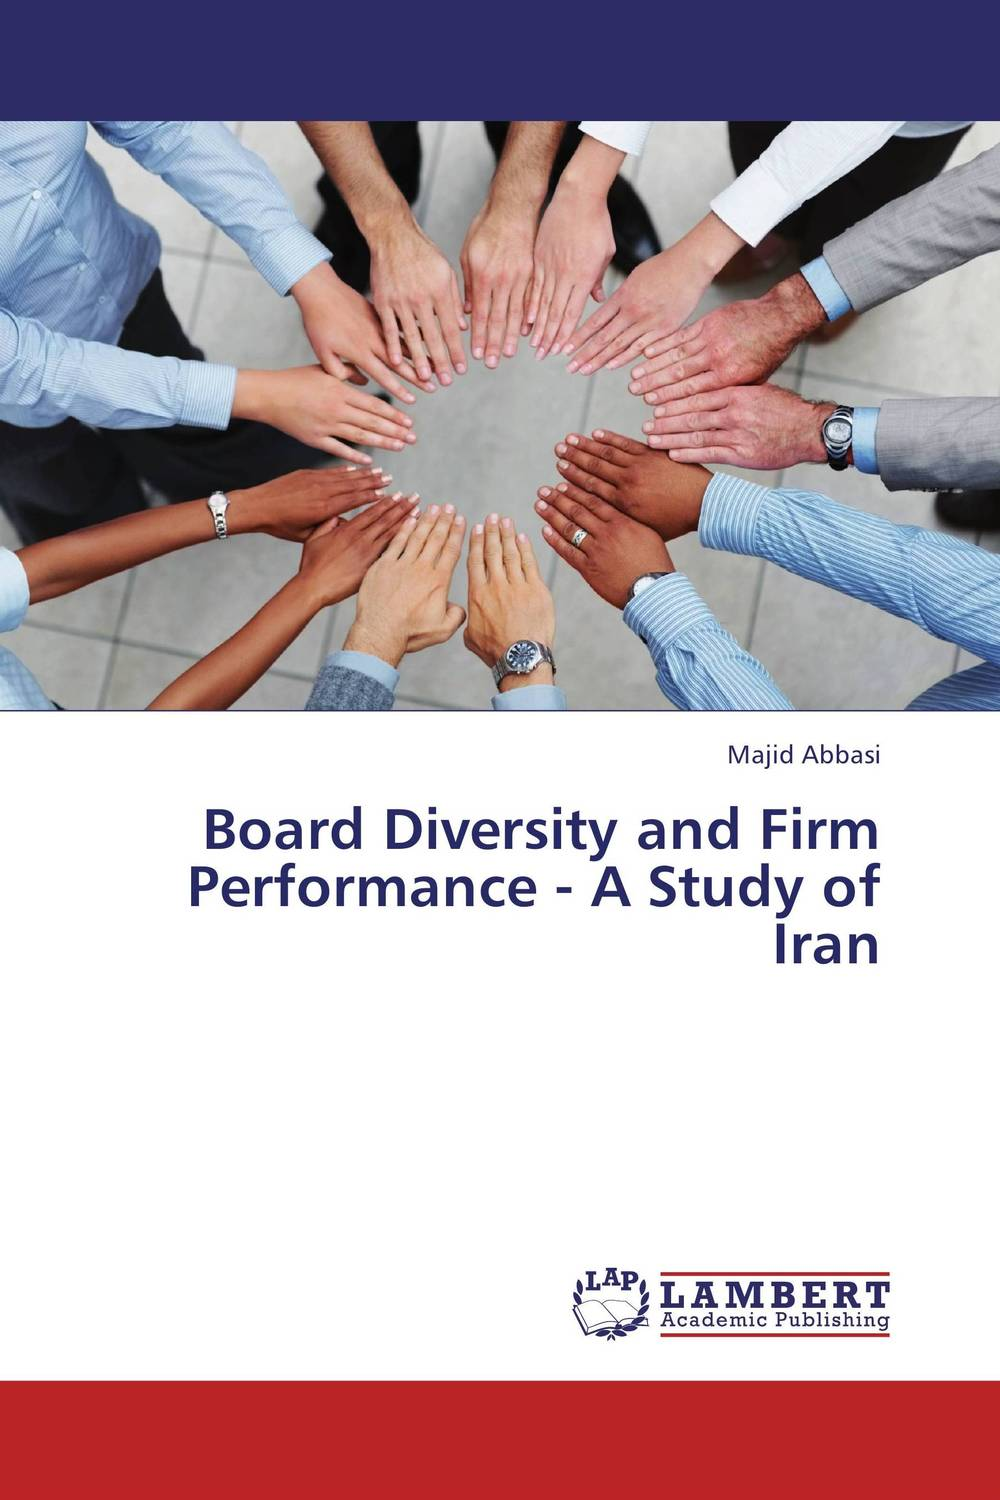 Board Diversity and Firm Performance - A Study of Iran majid abbasi board diversity and firm performance a study of iran